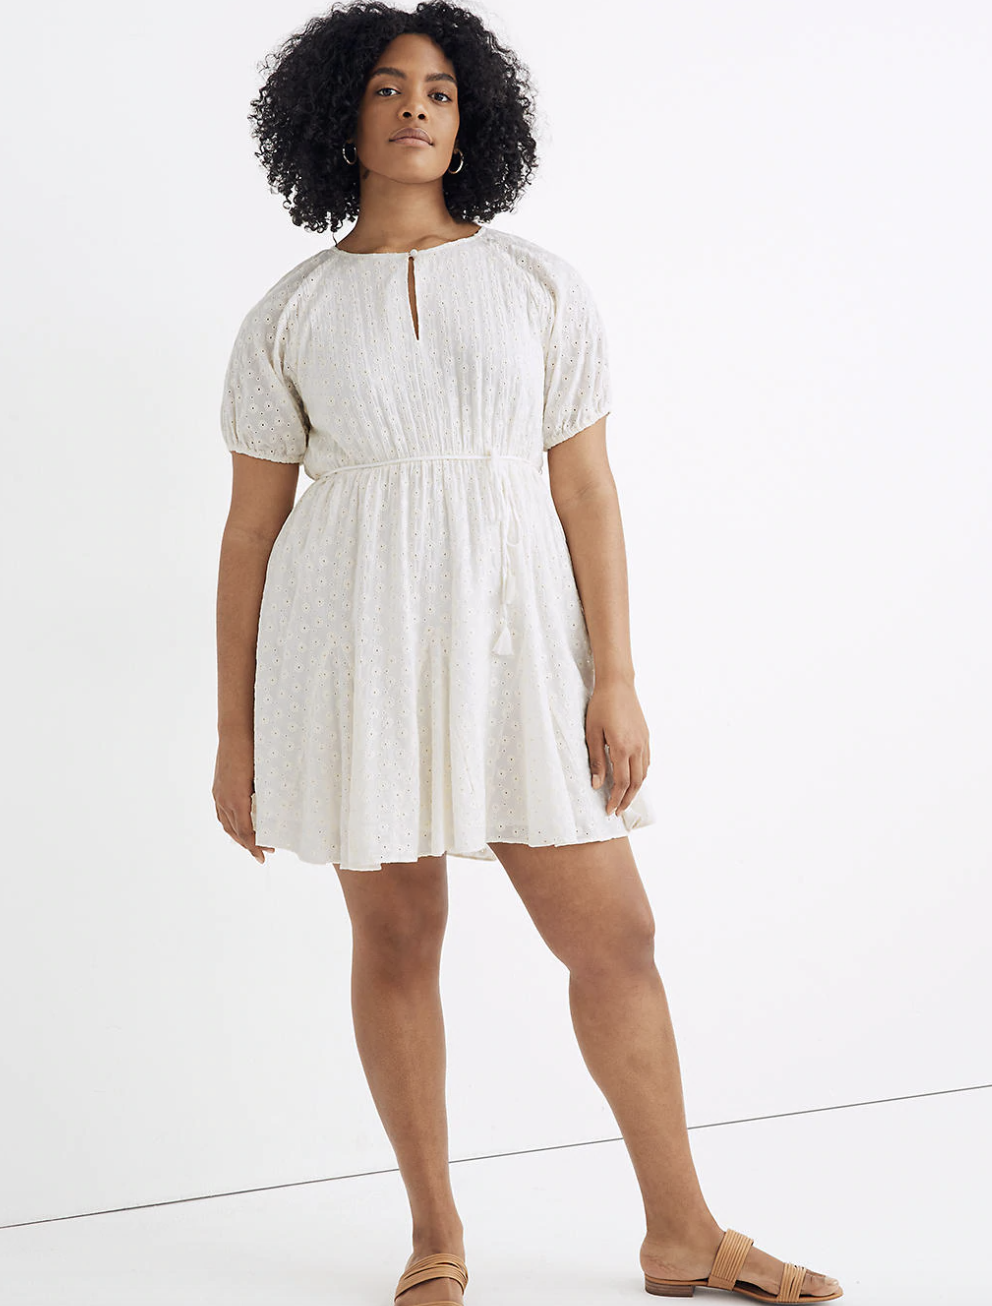 a model wearing a white short-sleeved eyelet dress with a thin rope belt, ends mid thigh